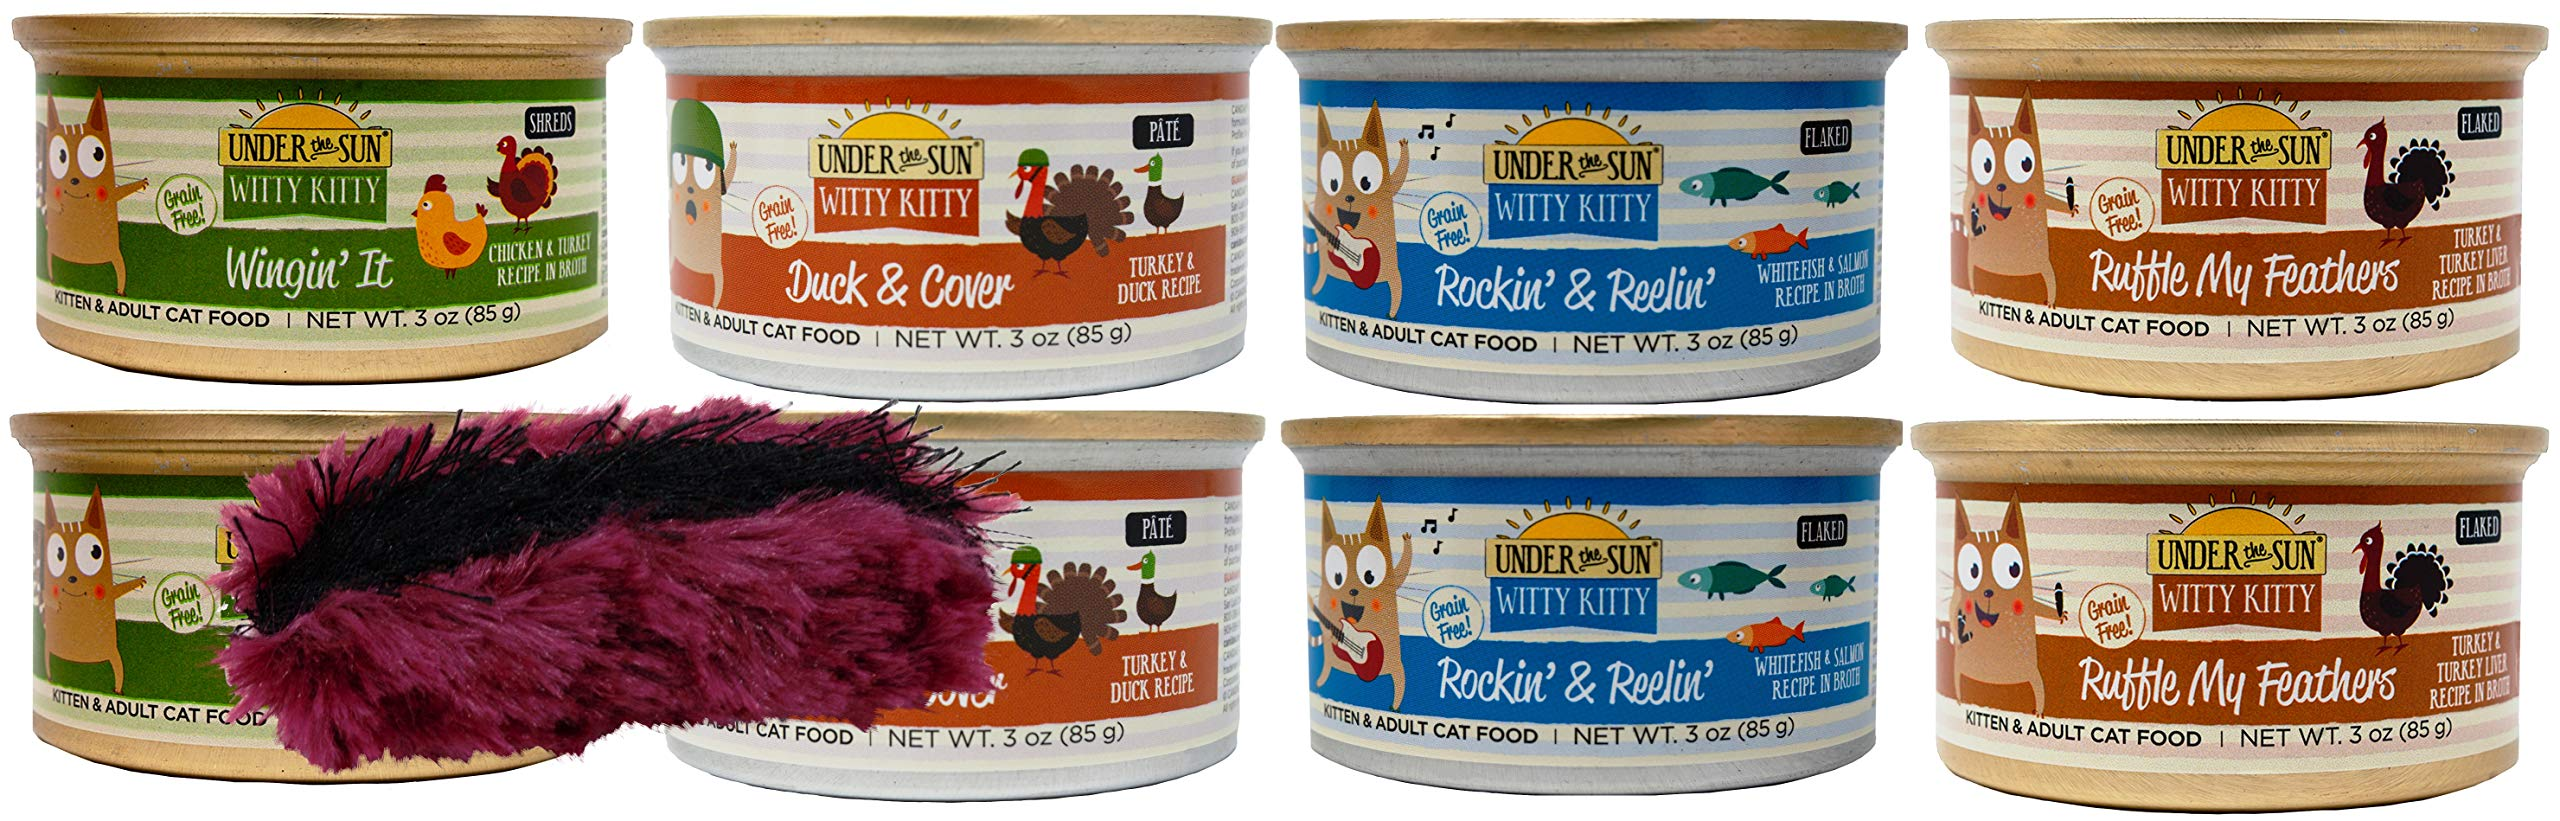 Witty Kitty Grain Free Kitten & Adult Cat 4 Flavor Variety 8 Can Bundle Toy, 2 Each: Wingin' It, Duck & Cover, Rockin' & Reelin', Ruffle My Feathers (3 Ounces)